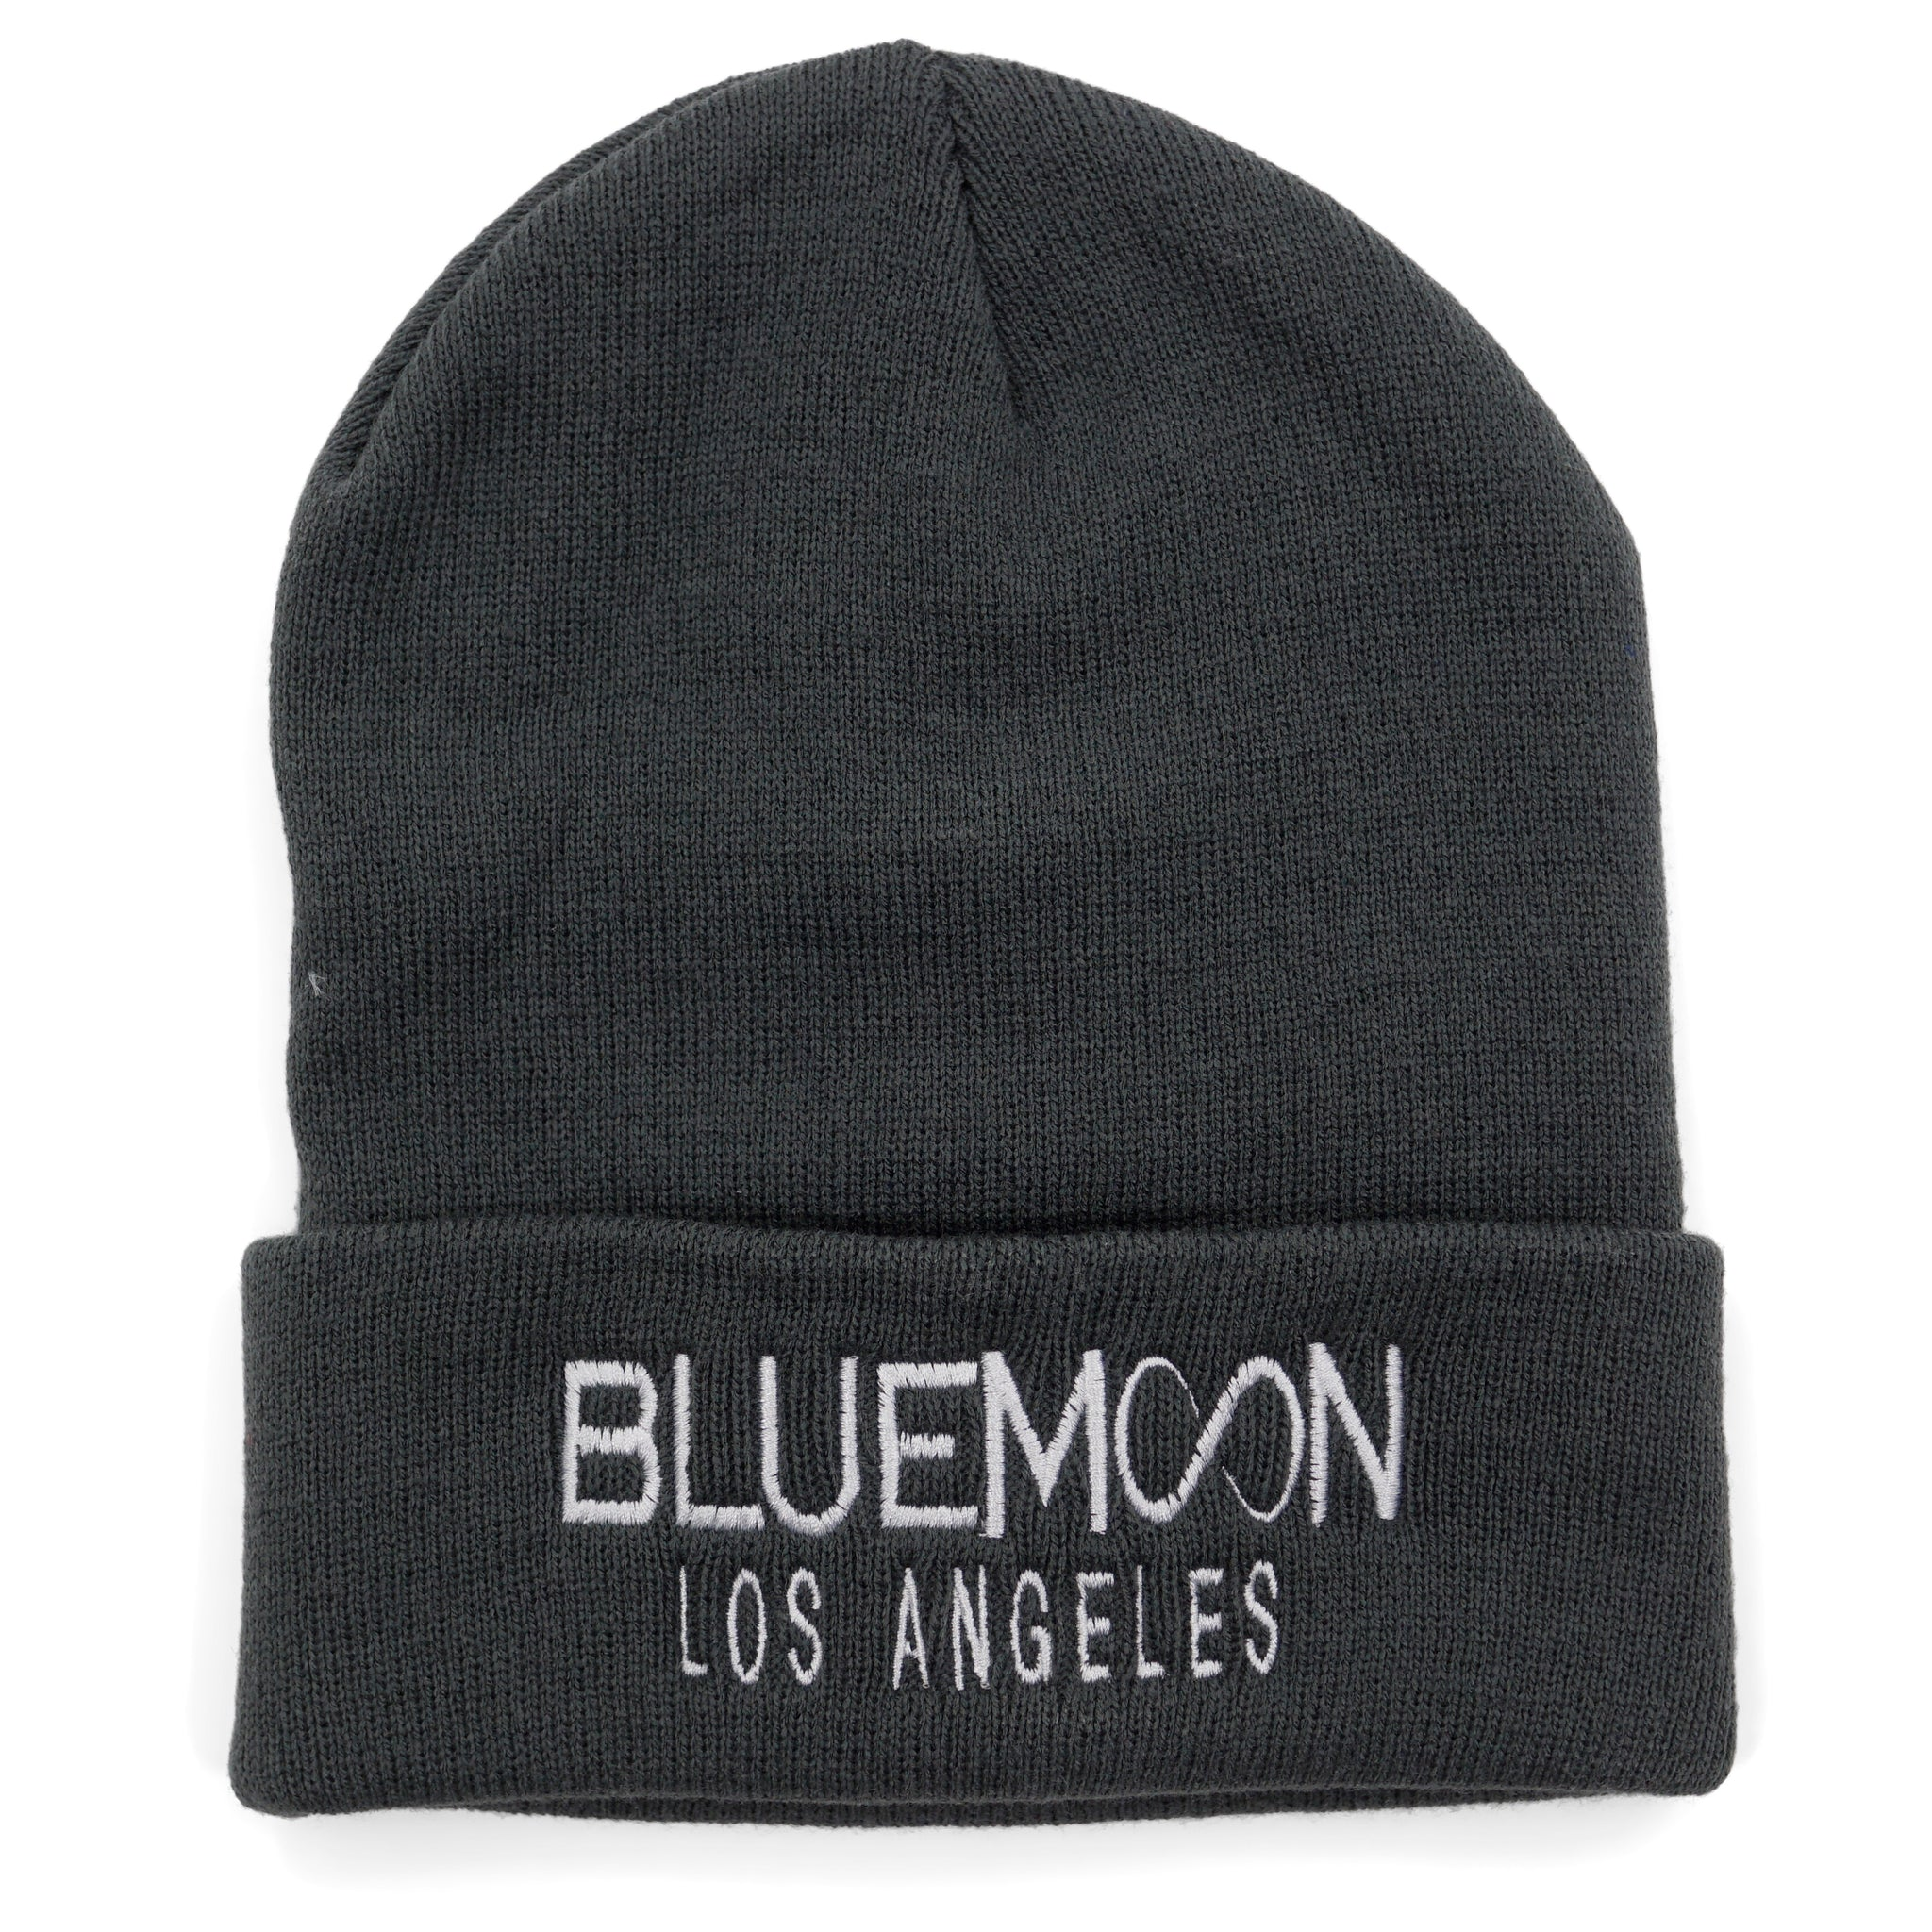 One size Grey BM Los Angeles Beanie by Blue Moon & Co, Exclusive, Lifestyle